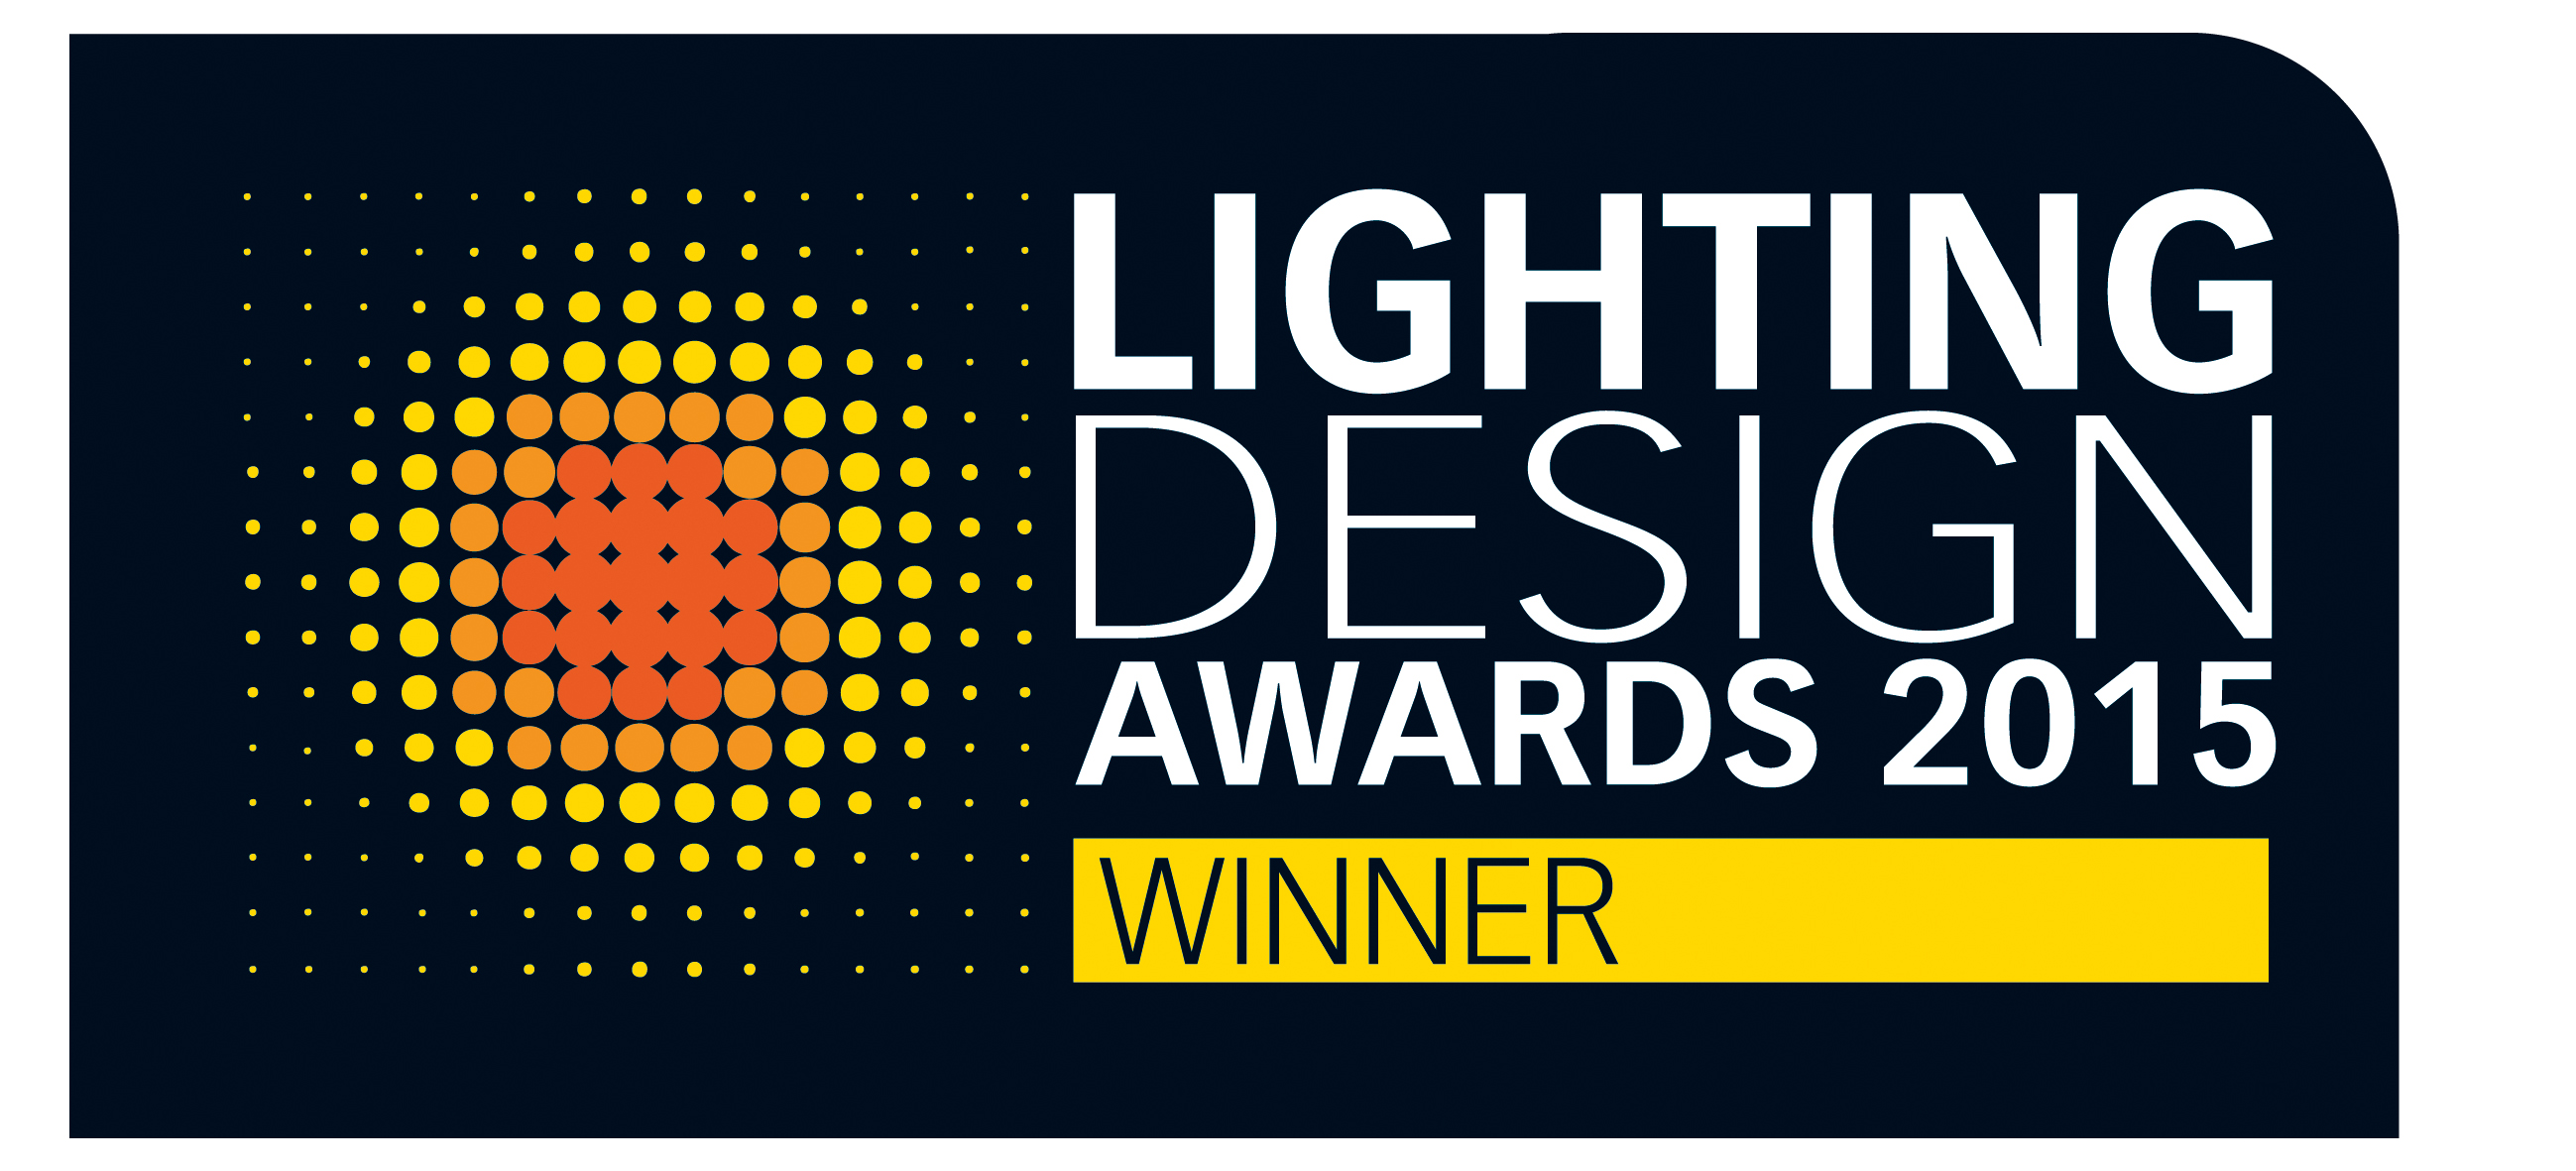 Dha Wins With Everyman Theatre At The Lighting Design Awards